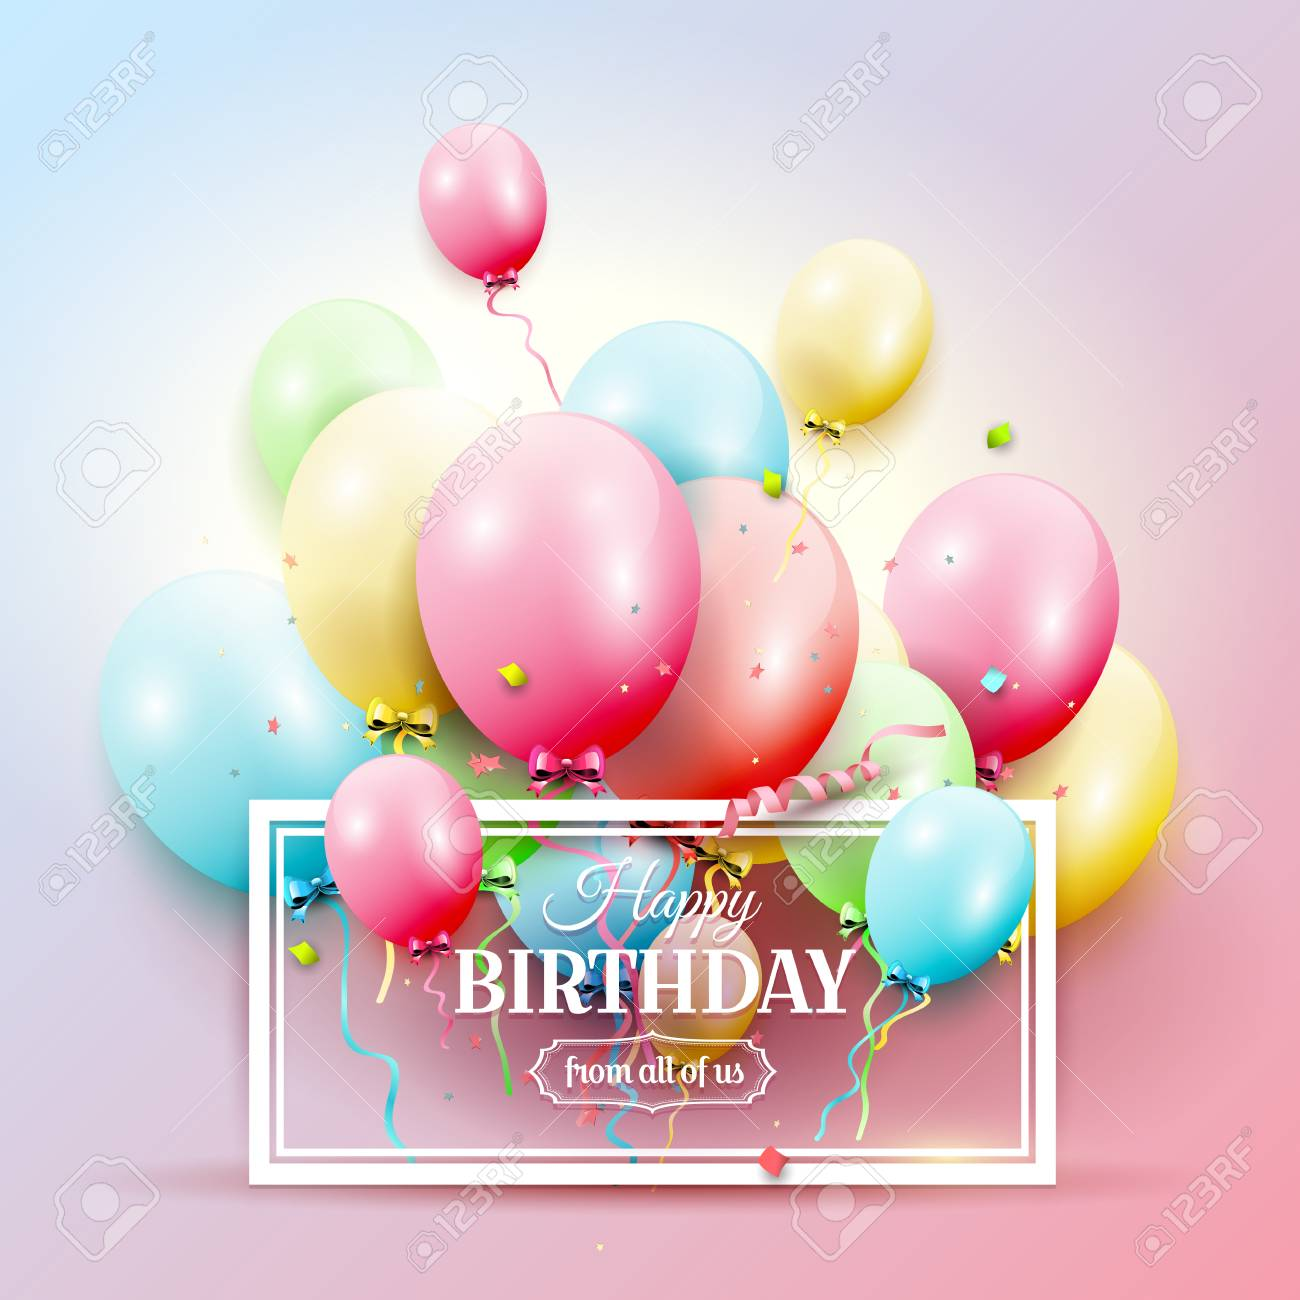 Happy birthday greeting card with colorful birthday balloons happy birthday greeting card with colorful birthday balloons on pink background stock vector 94027235 m4hsunfo